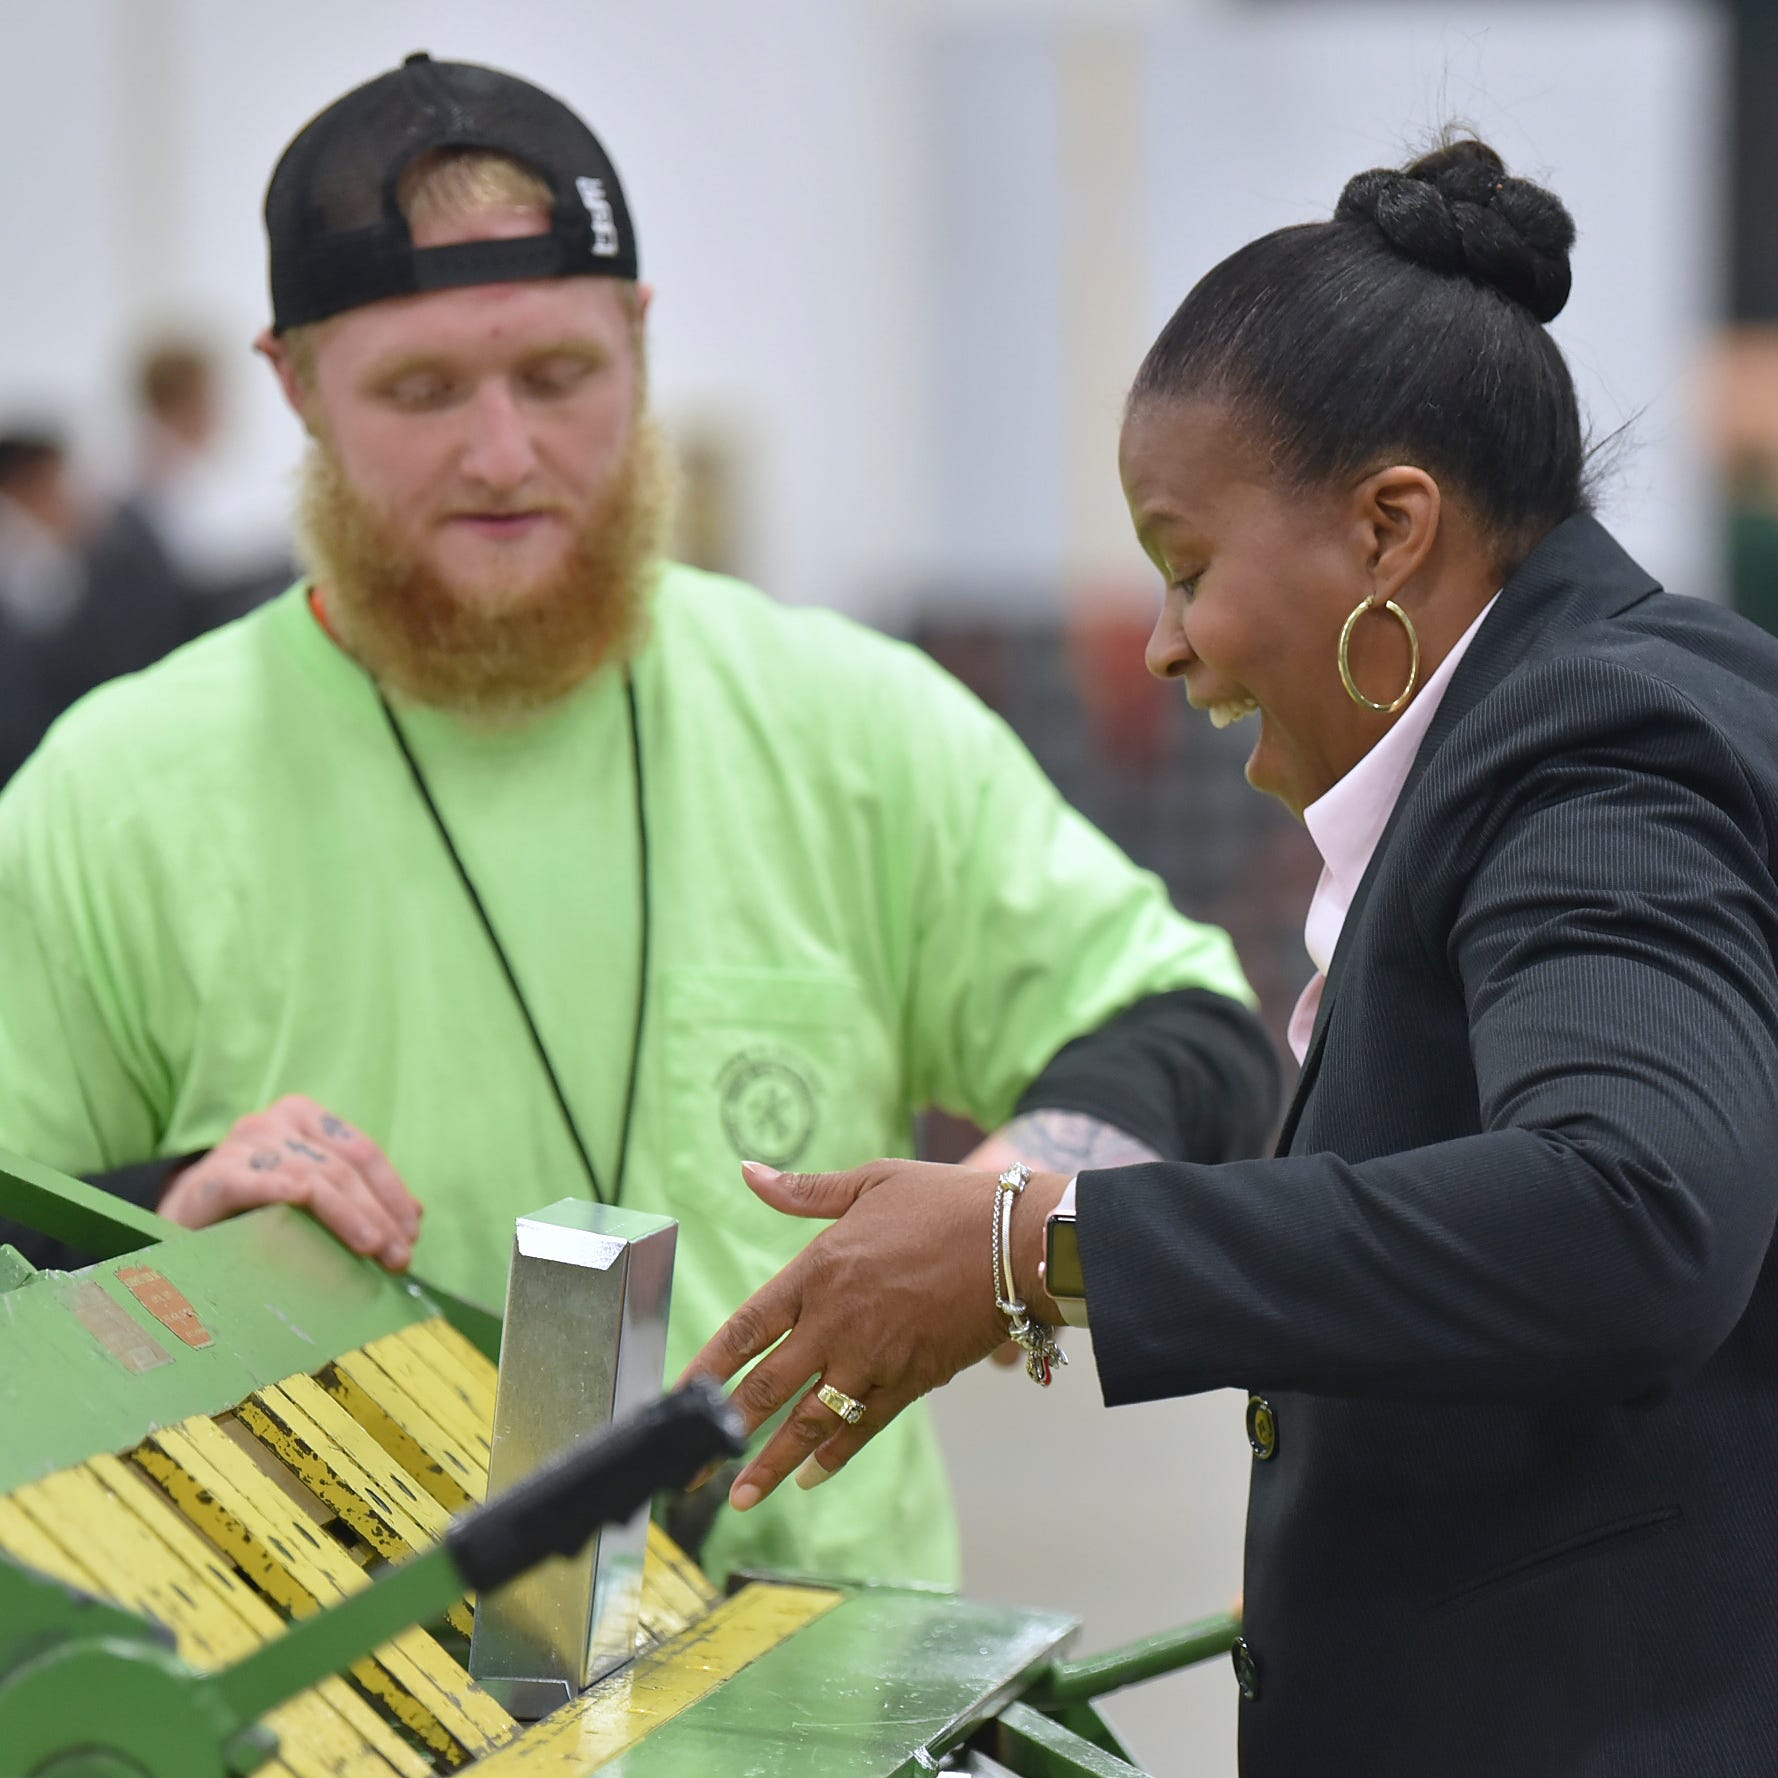 Hundreds explore construction trades at career expo